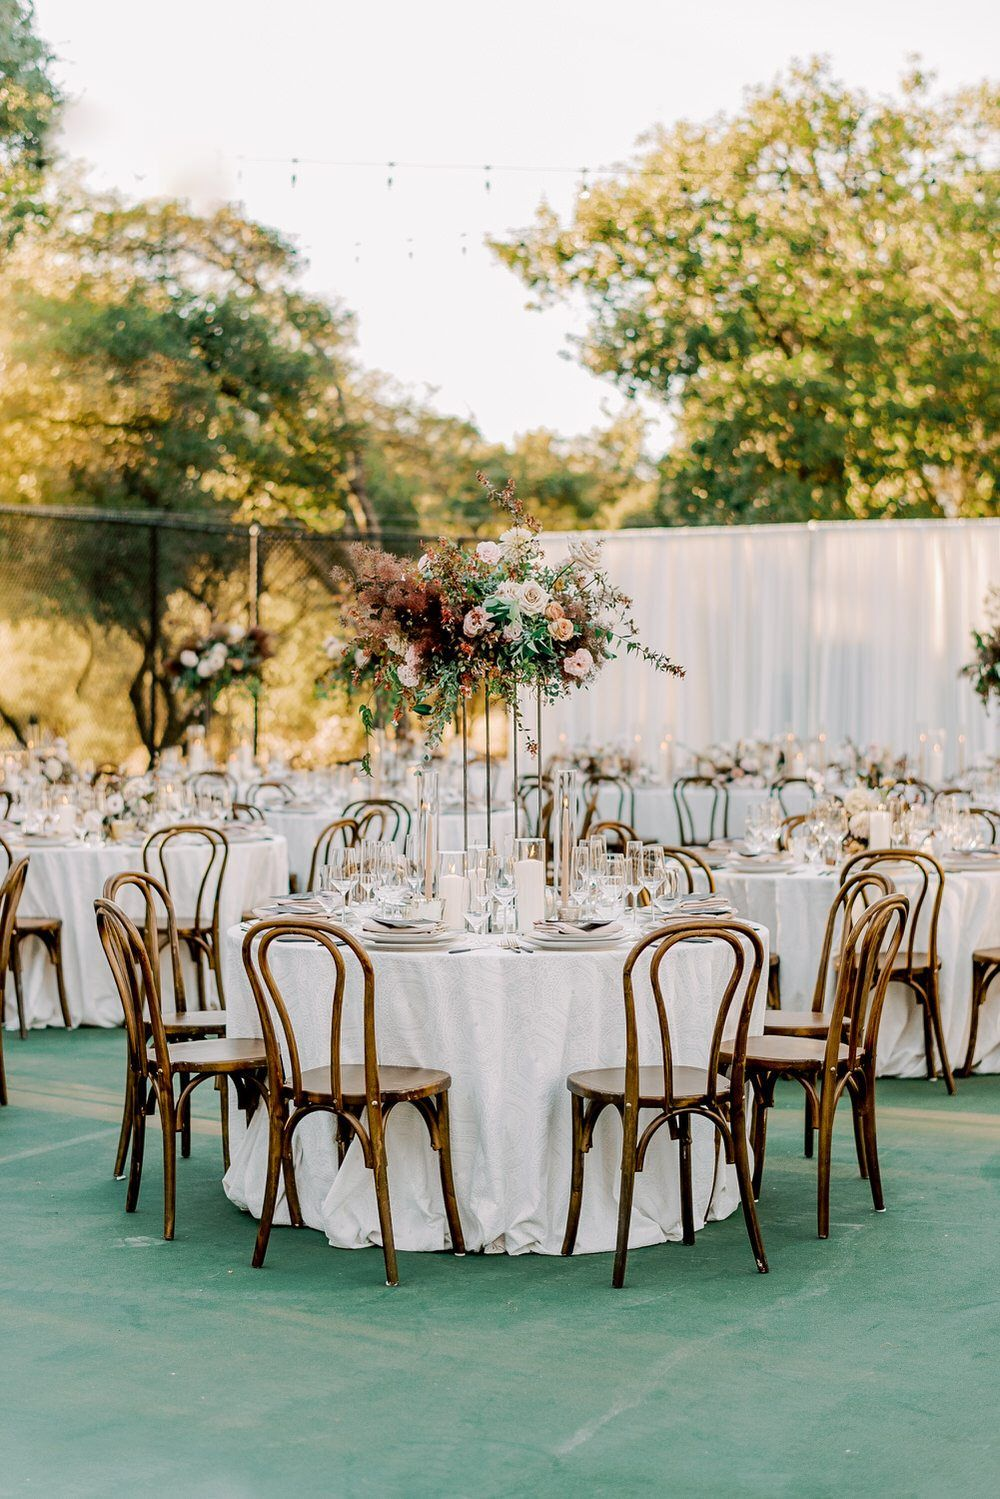 This Backyard Wedding in California is Why We Love Chic Black Details ⋆ Ruffled